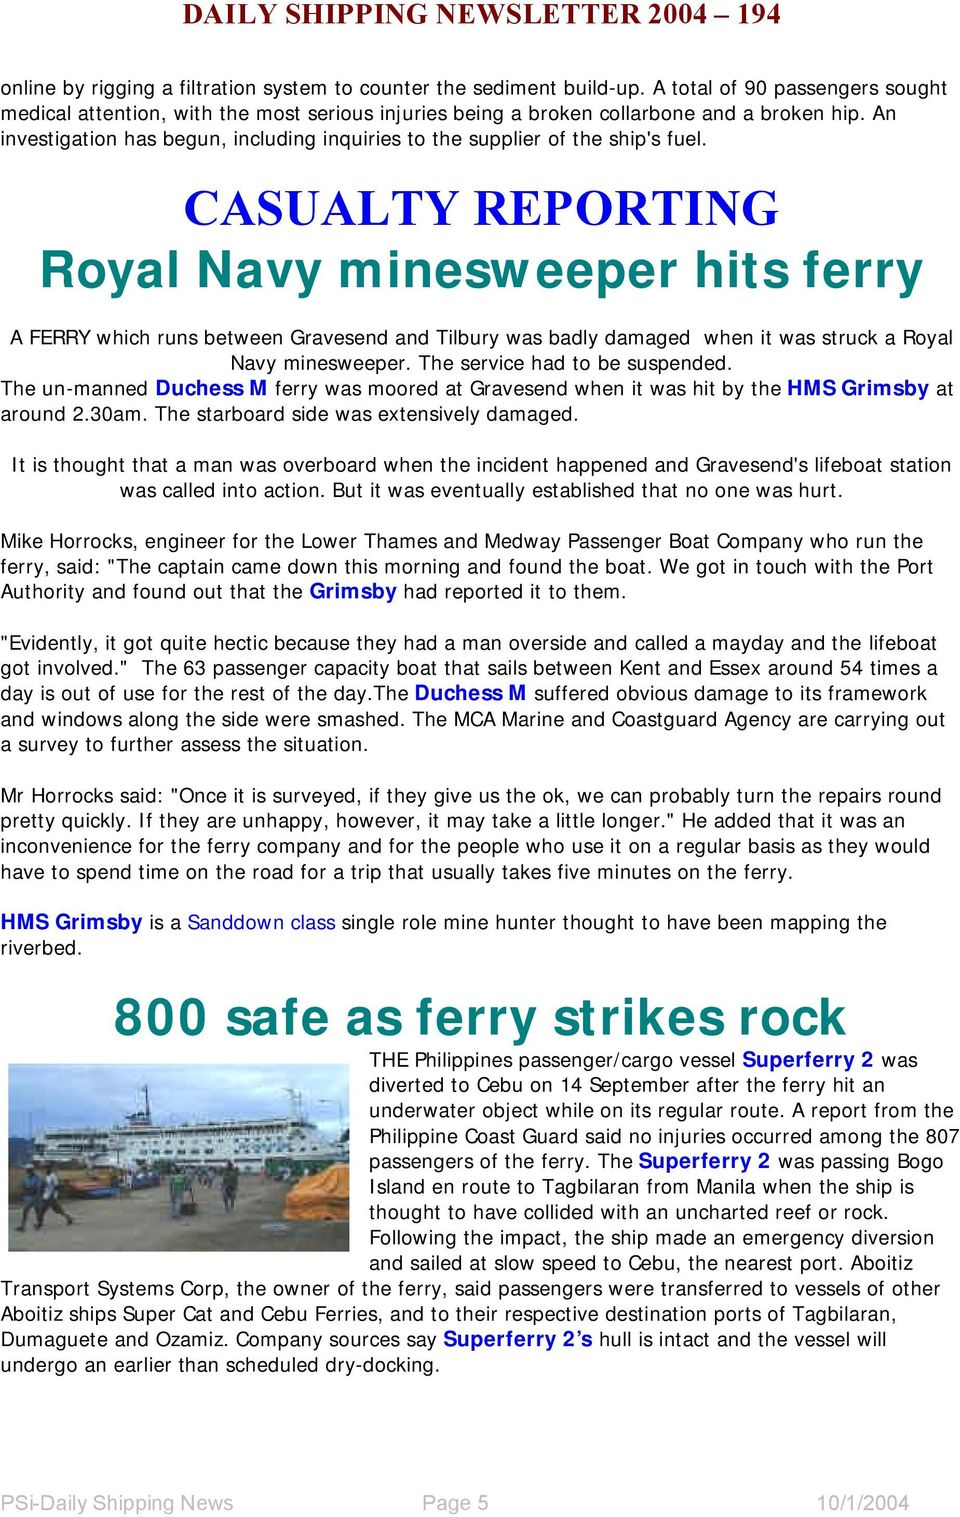 CASUALTY REPORTING Royal Navy minesweeper hits ferry A FERRY which runs between Gravesend and Tilbury was badly damaged when it was struck a Royal Navy minesweeper. The service had to be suspended.